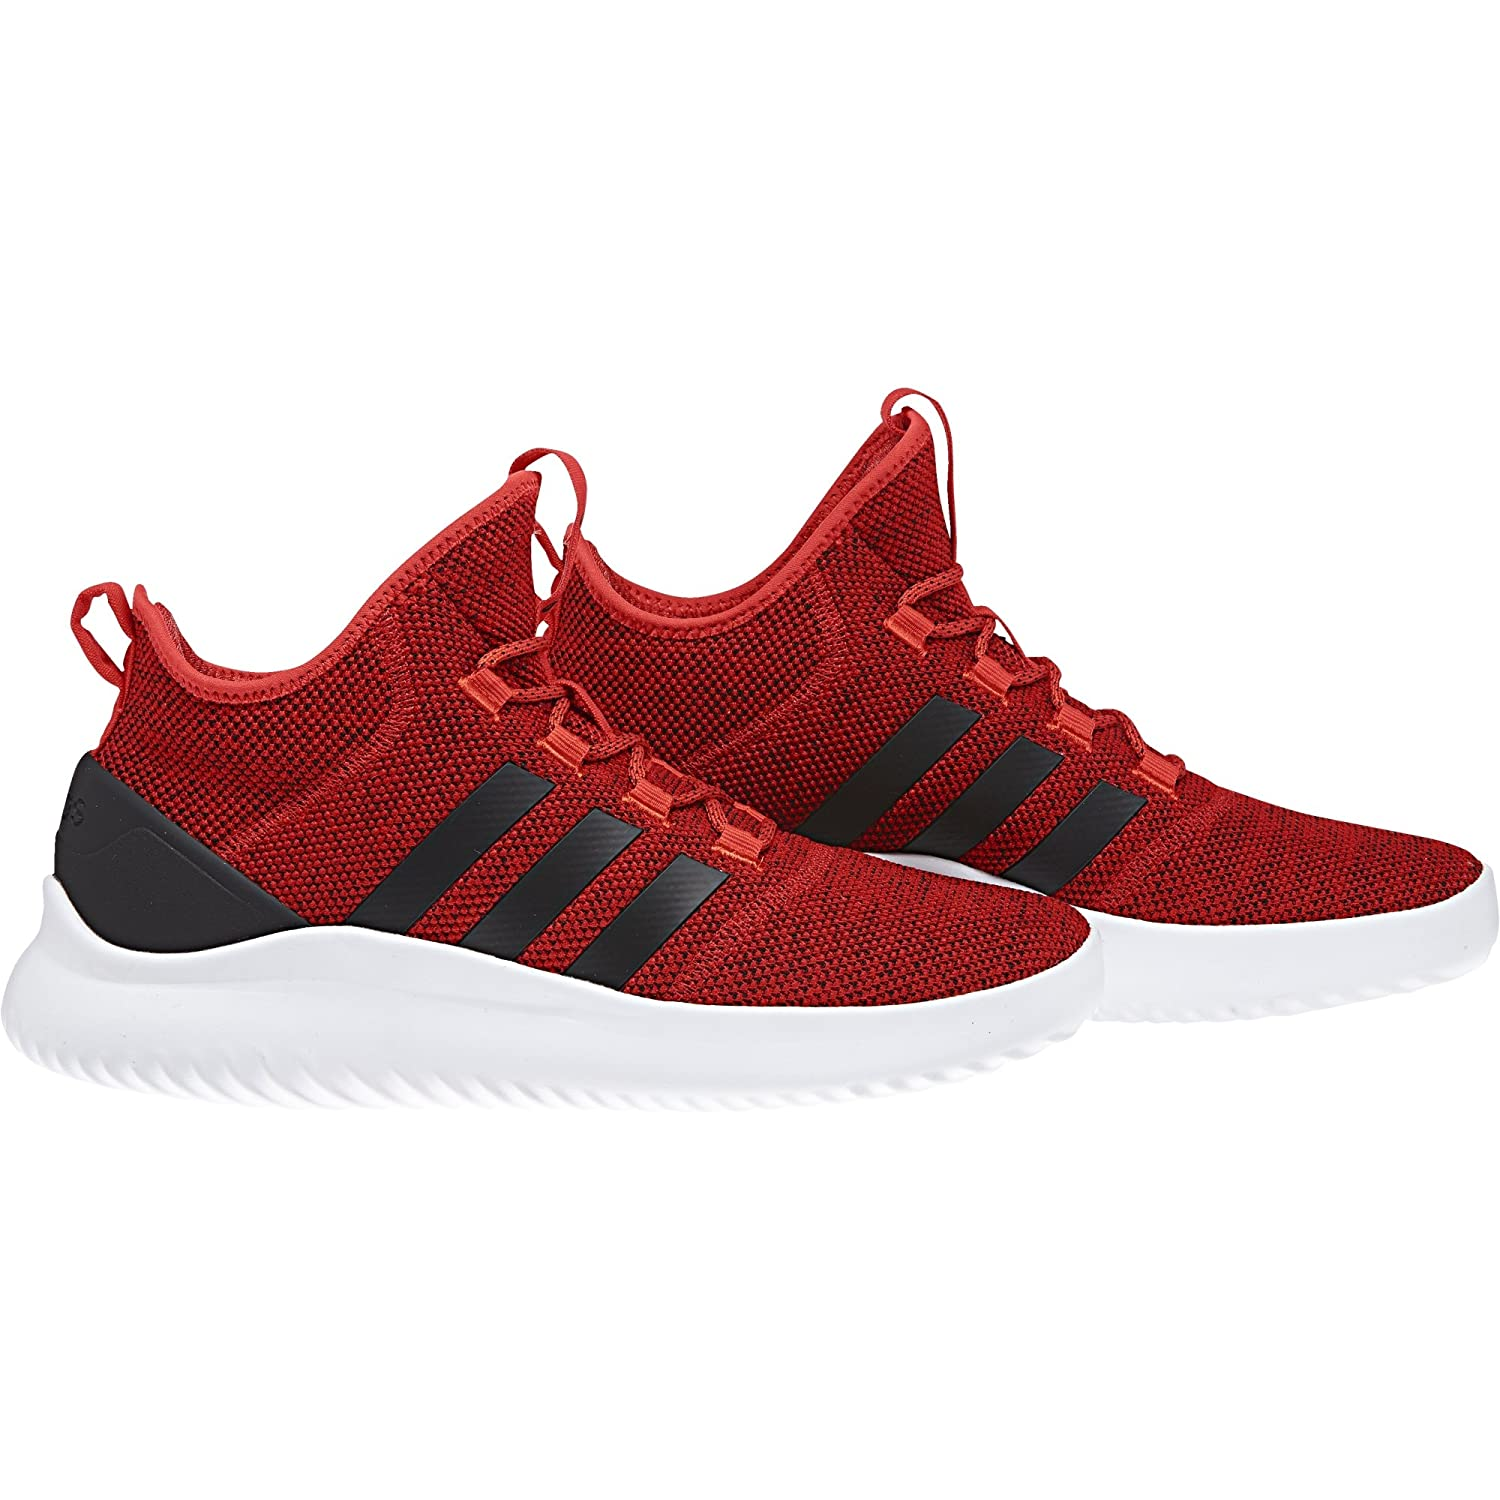 adidas Men's Cloudfoam Ultimate Bball Sneakers